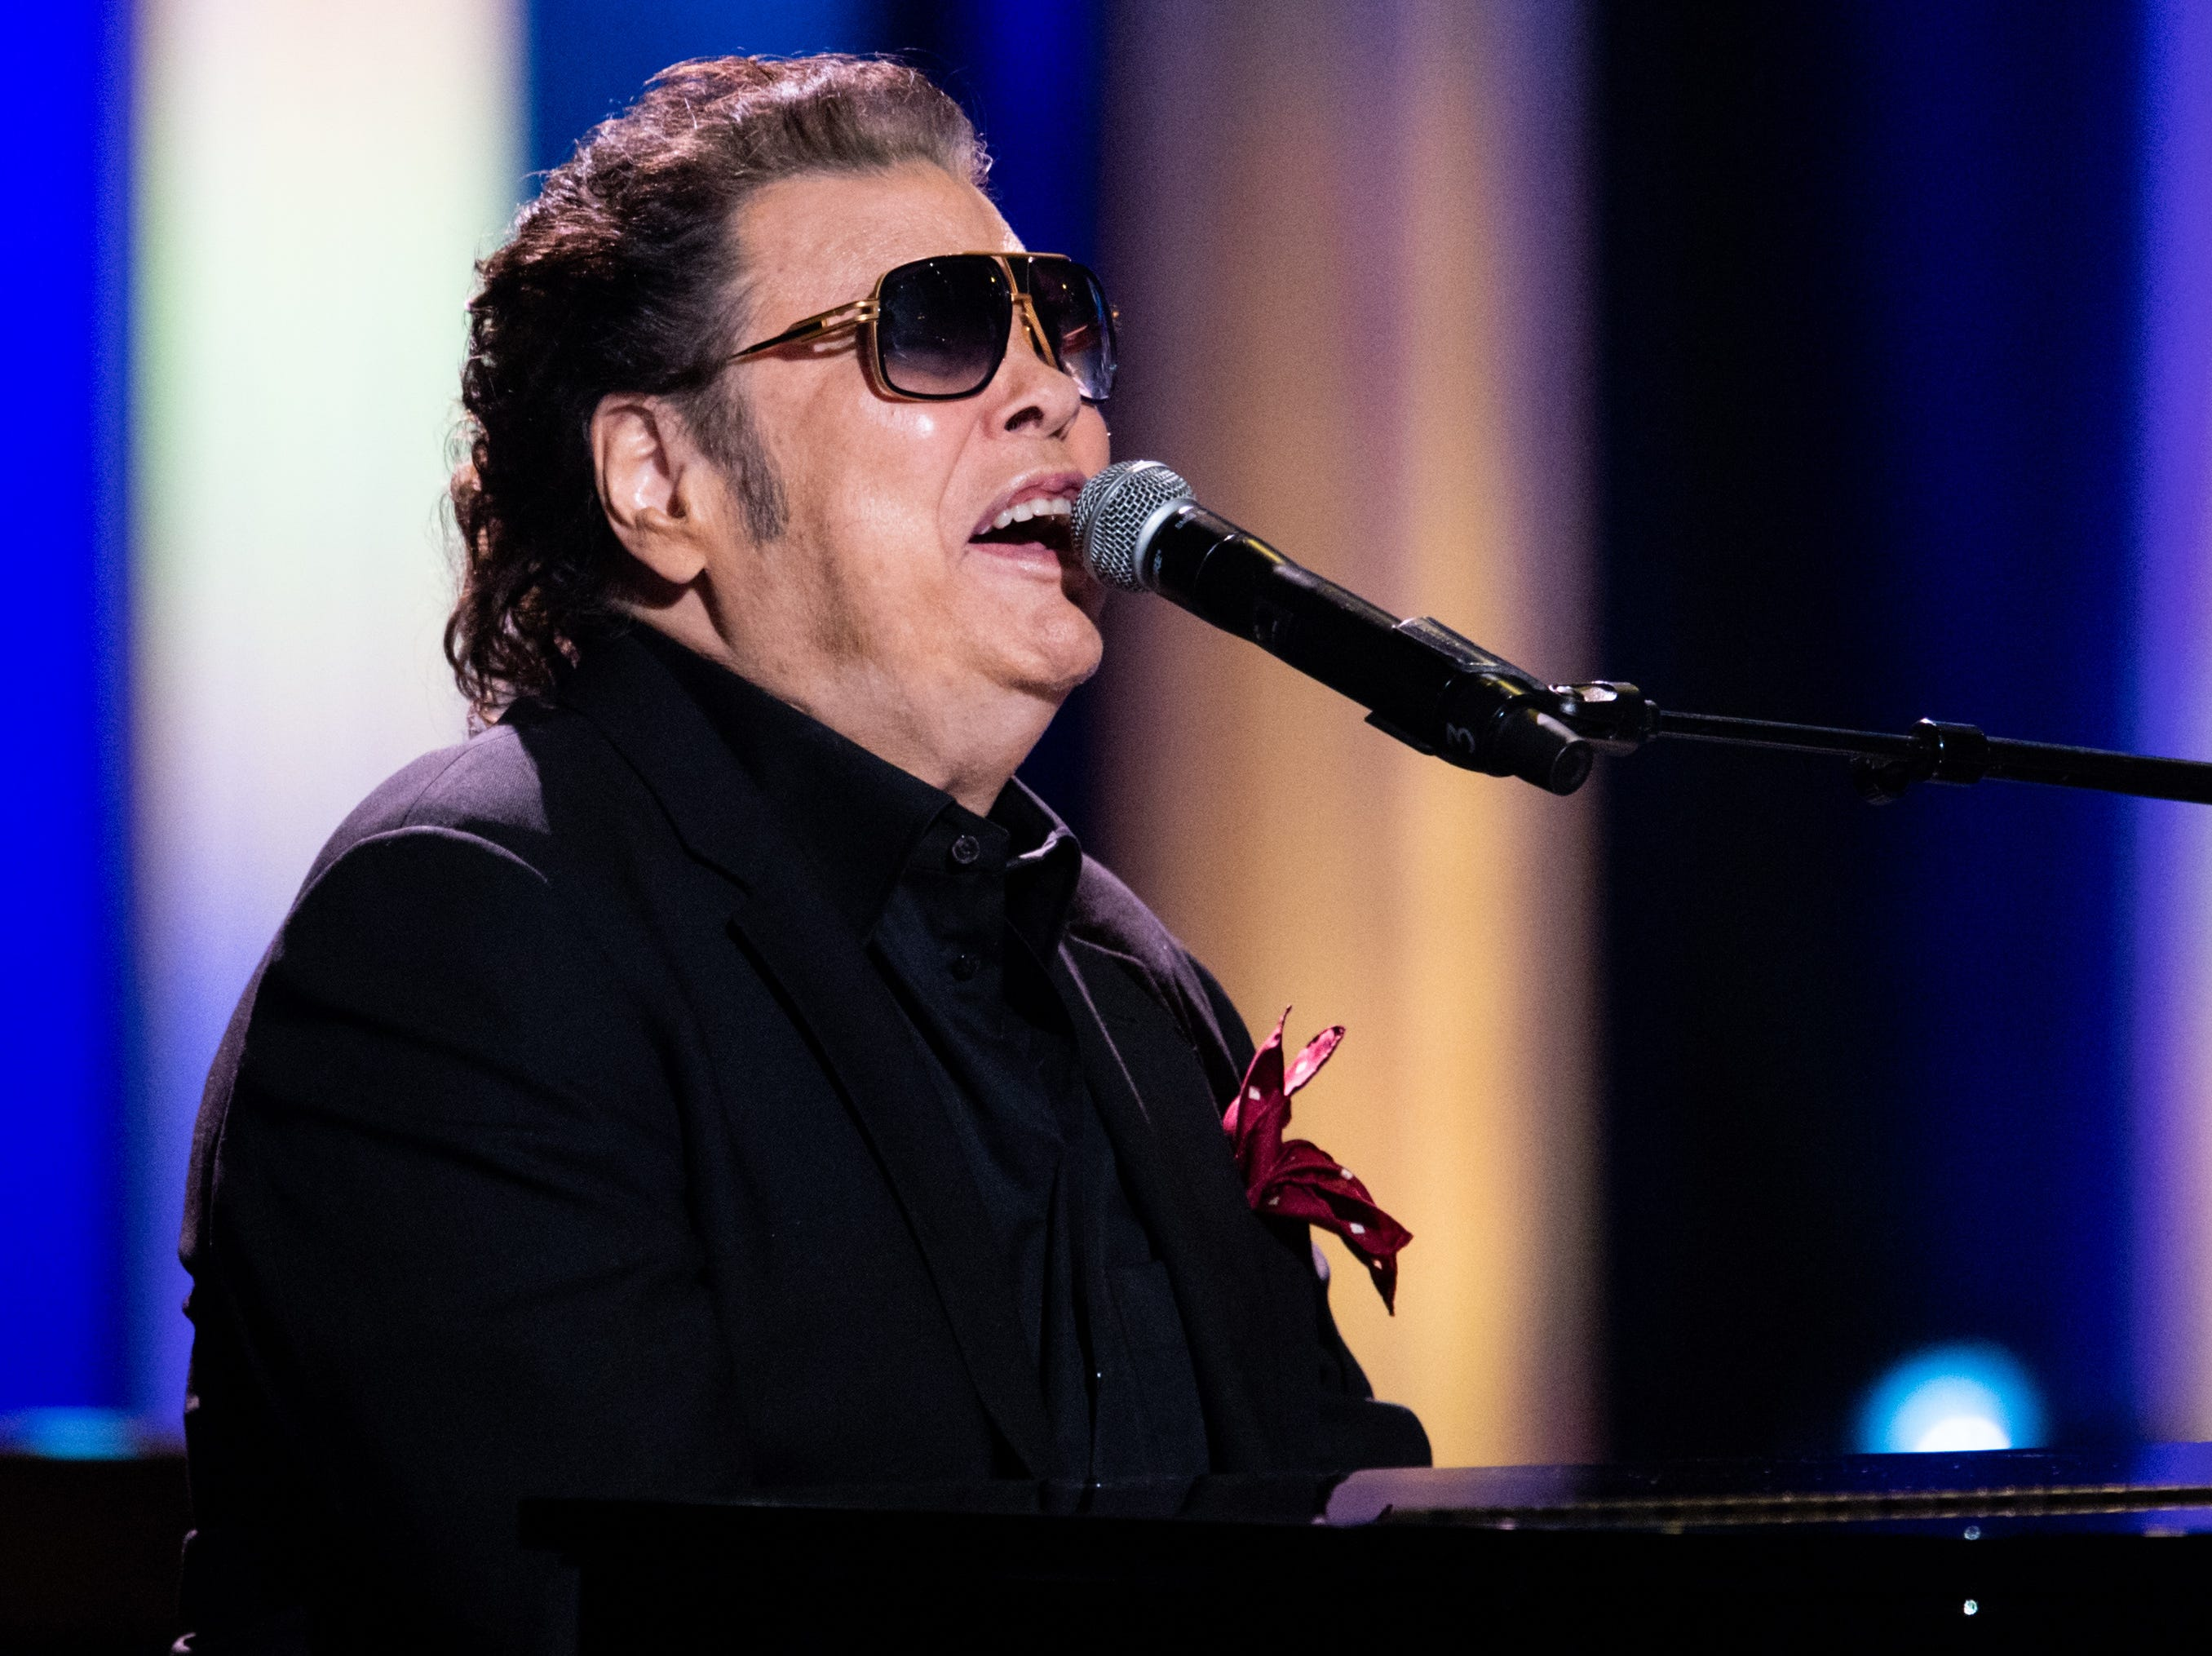 """Ronnie Milsap performs during """"An Opry Salute to Ray Charles"""" at the Grand Ole Opry in Nashville on Oct. 8, 2018."""